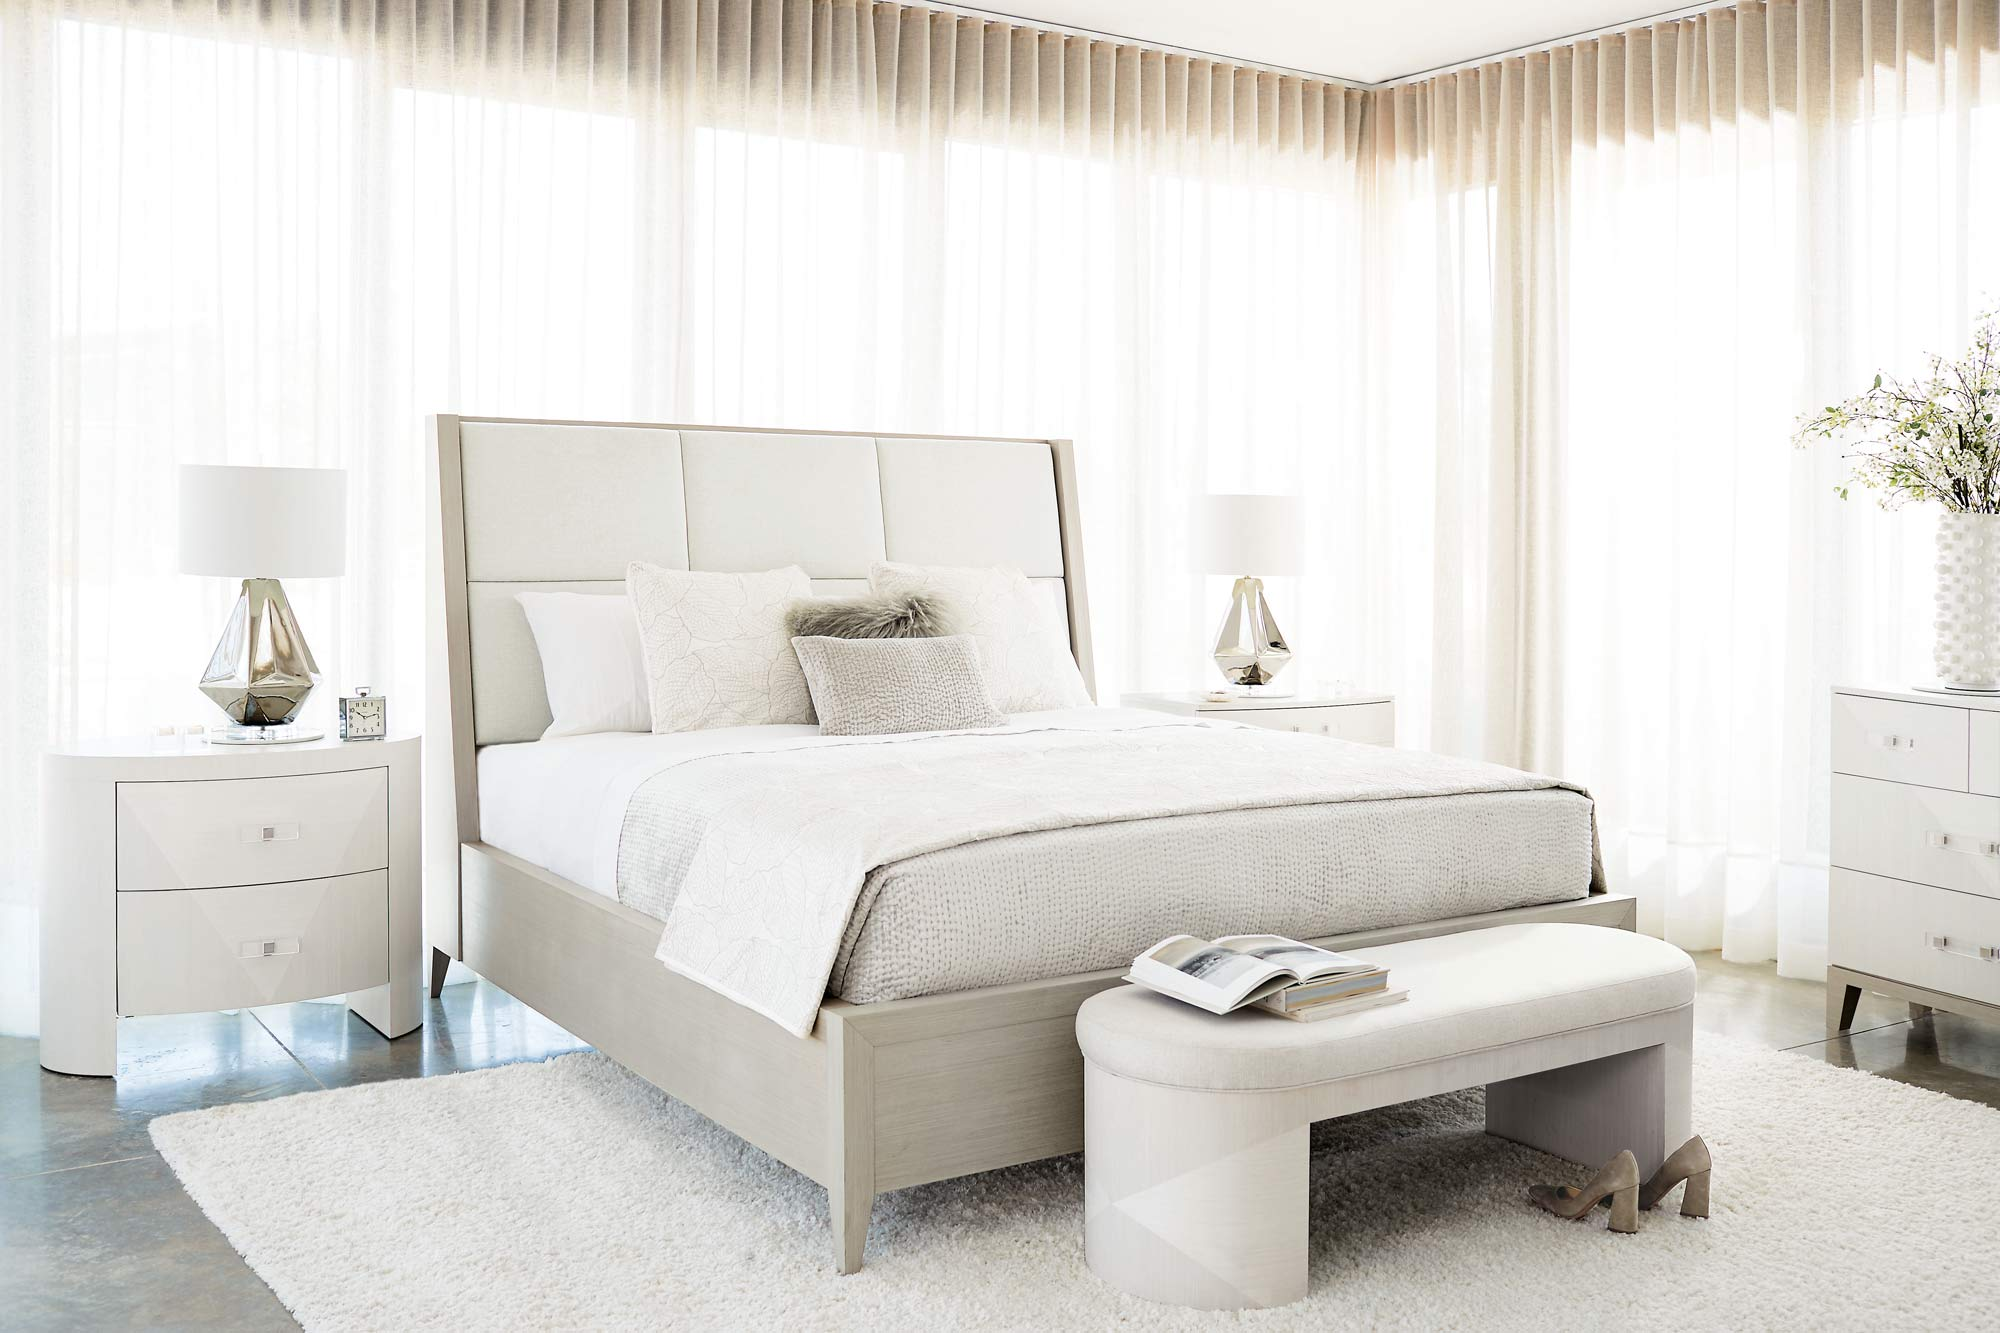 Already going crazy for this Bernhardt Axiom bedroom collection -- Cannot wait to see it in person!